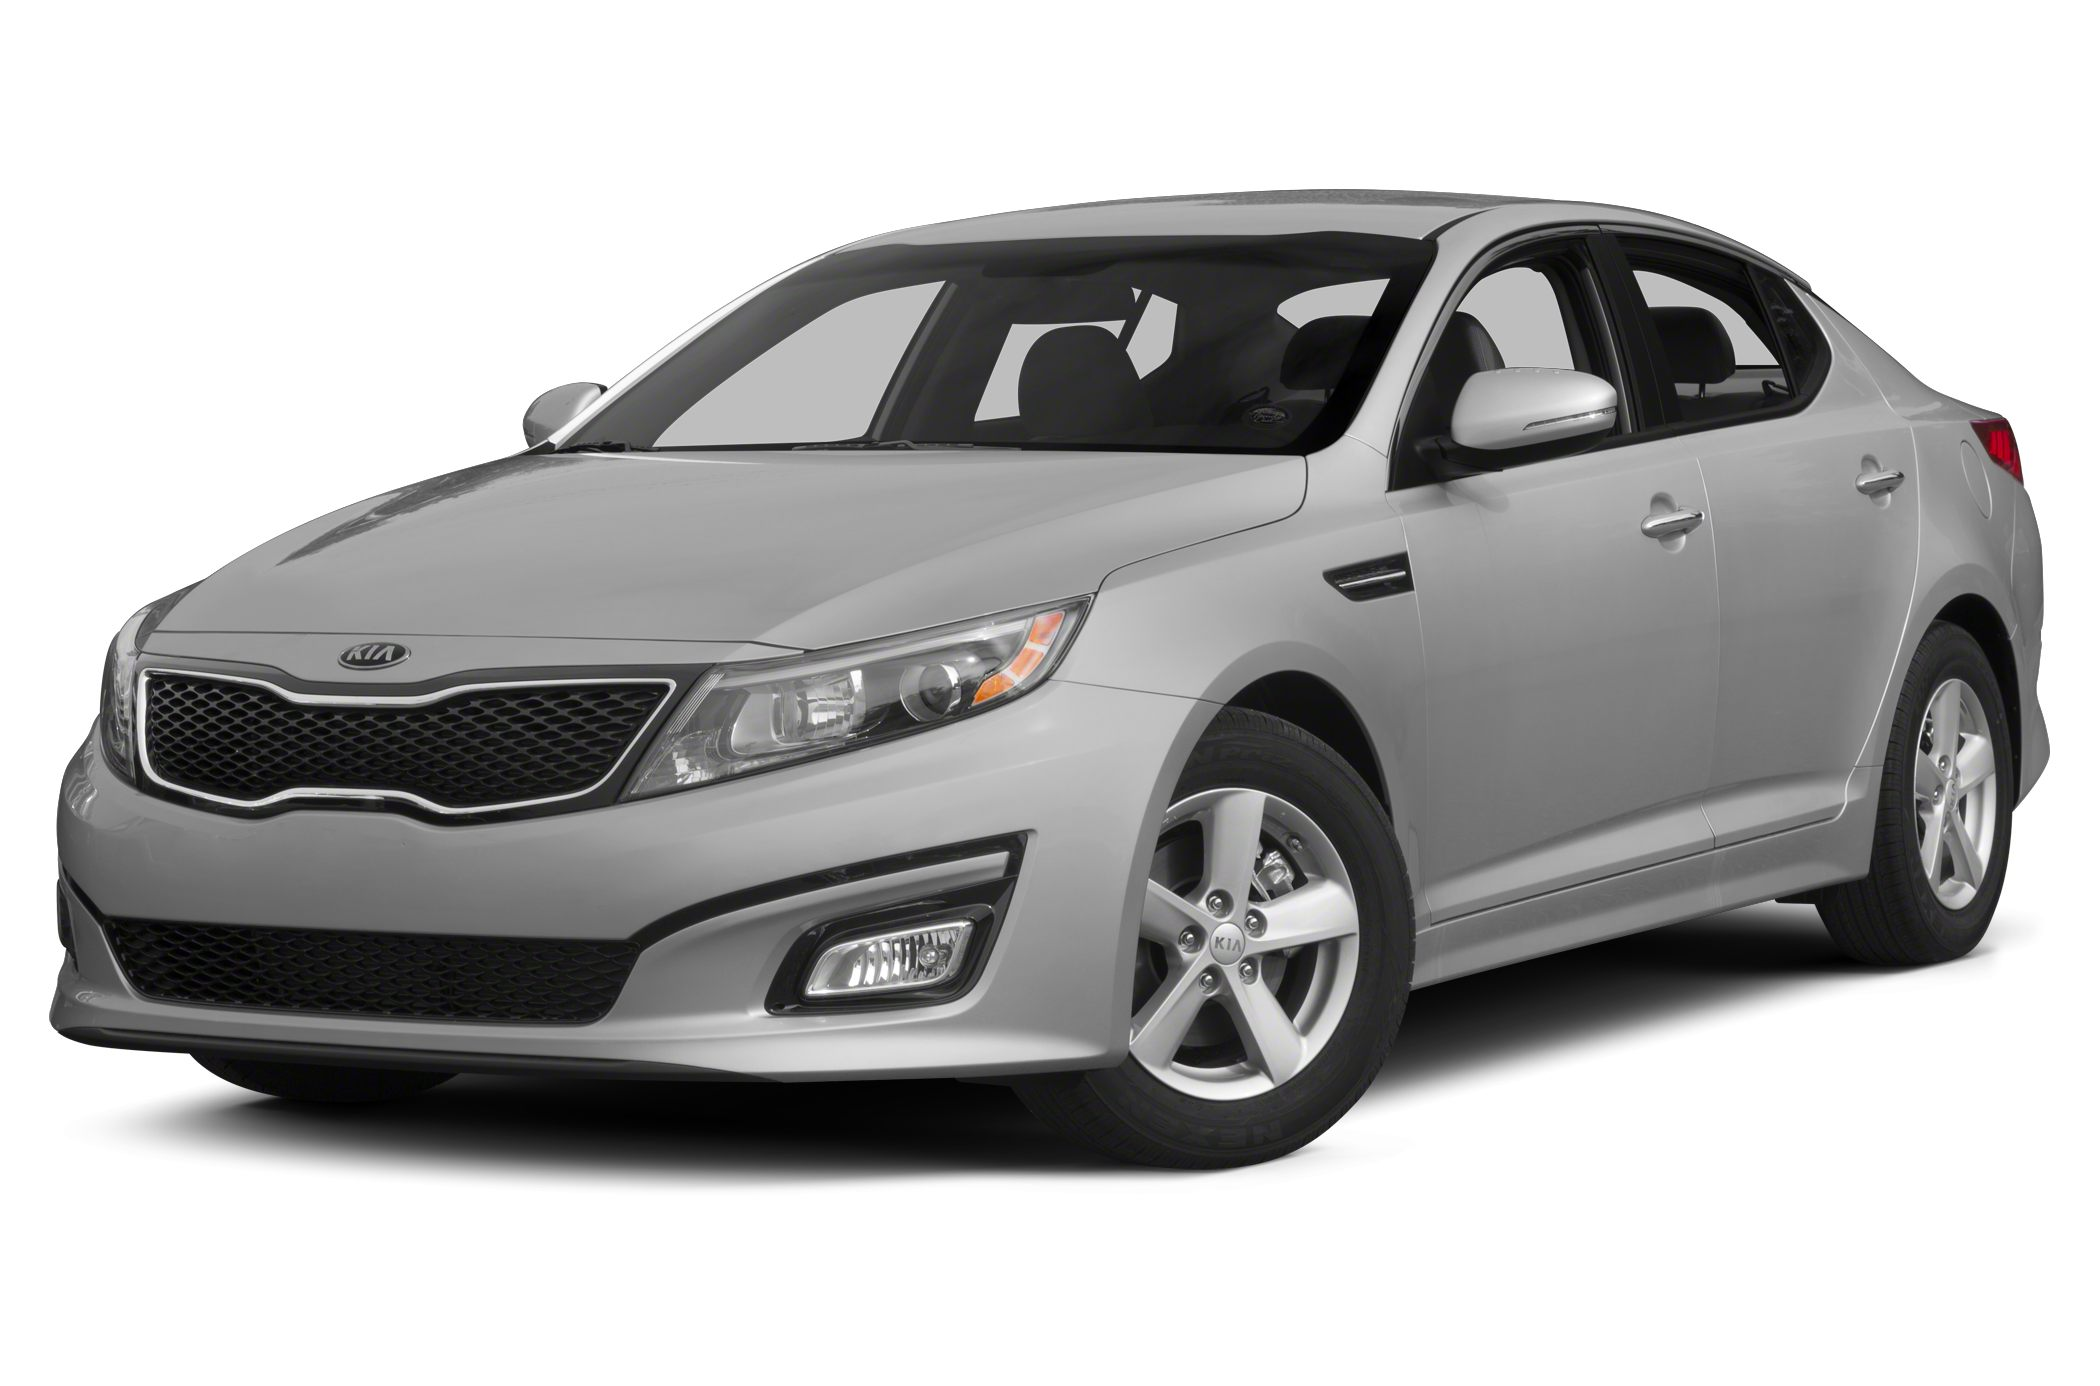 2015 Kia Optima LX Miles 59720Color Silver Stock K17506A VIN 5XXGM4A70FG503380